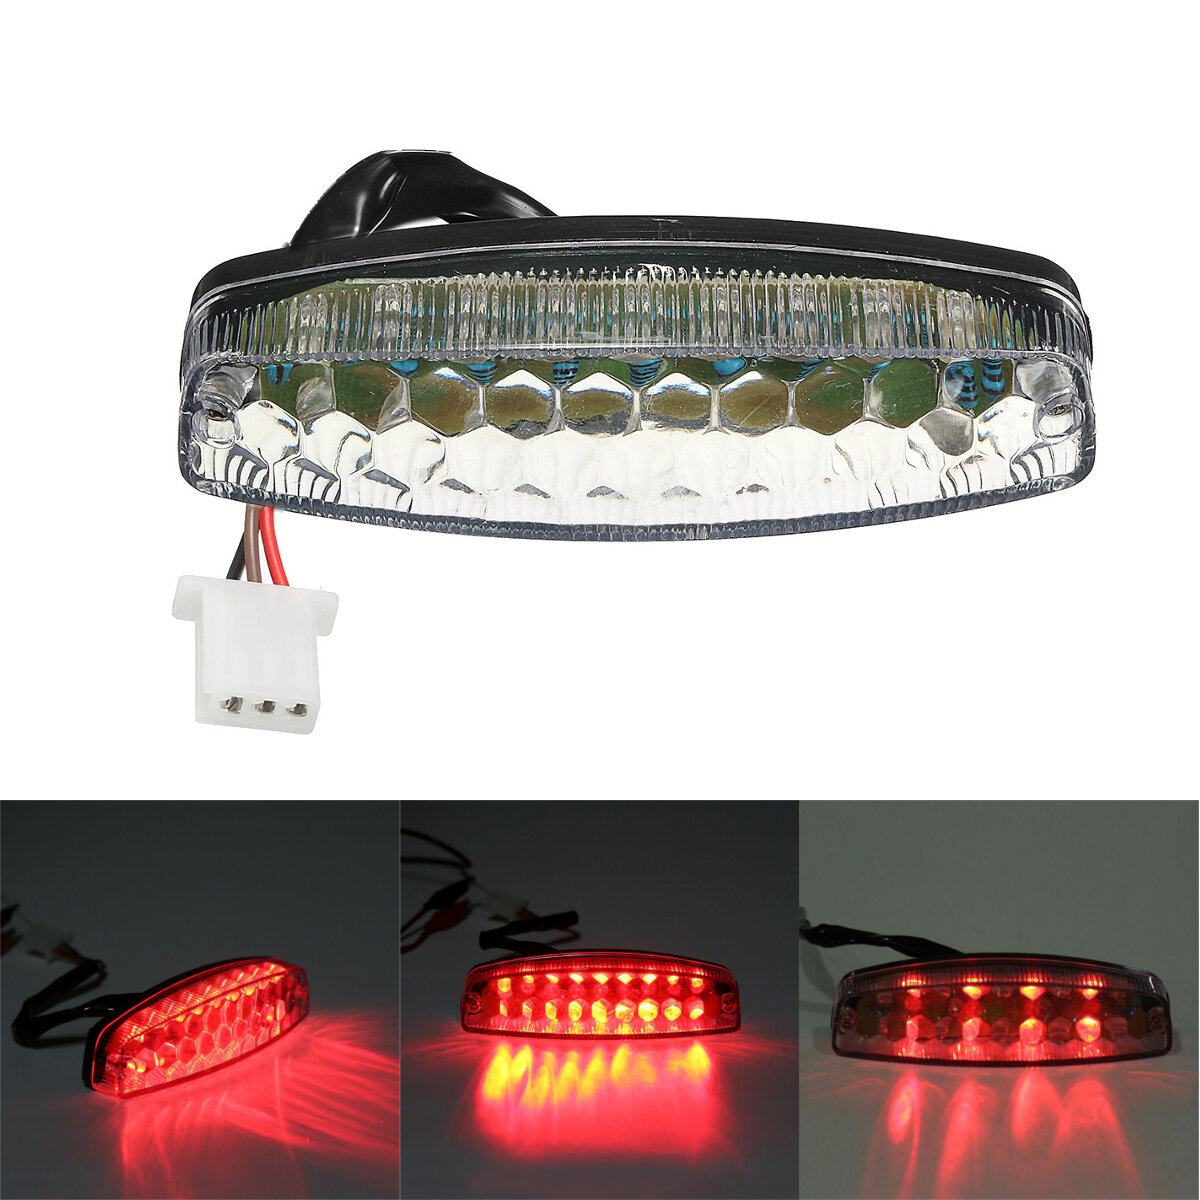 LED Rear Tail Brake Light For 50cc 70cc 110cc 125cc ATV Quad Kart TaoTao  Sunl Chinese